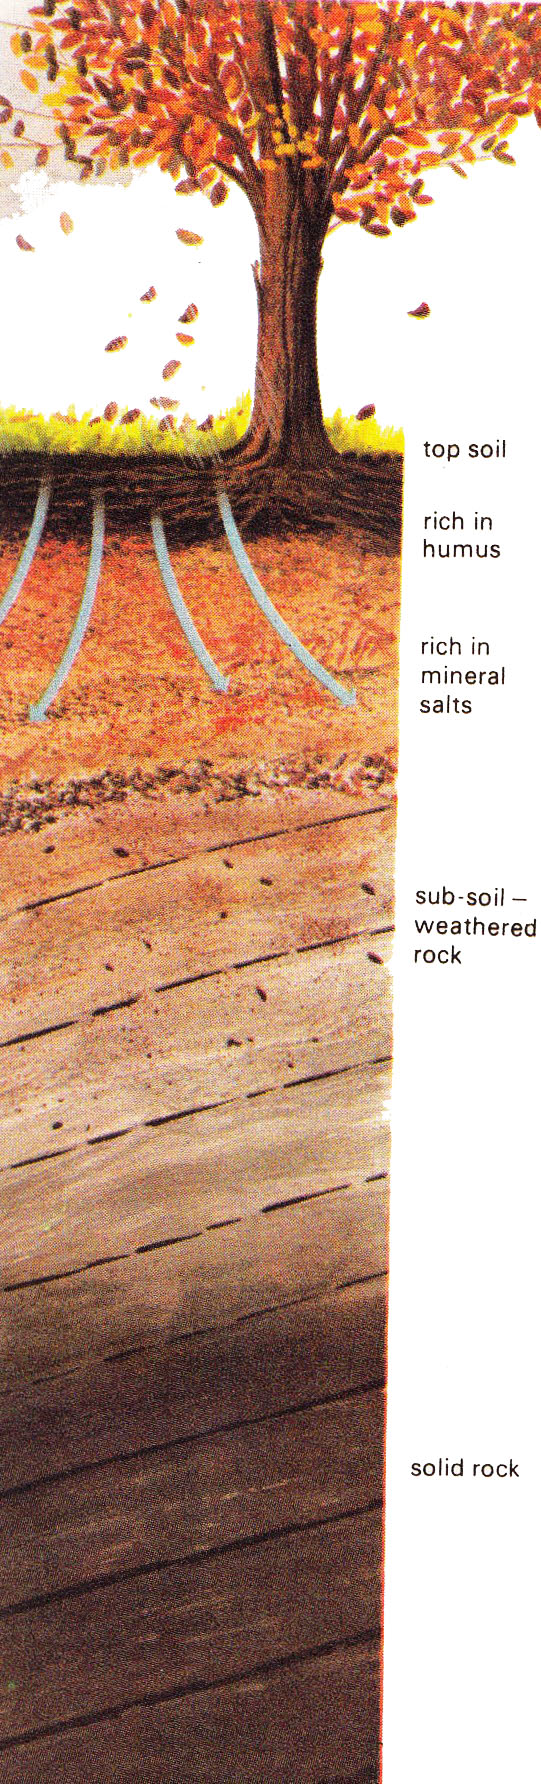 Facts about Rocks and Soils